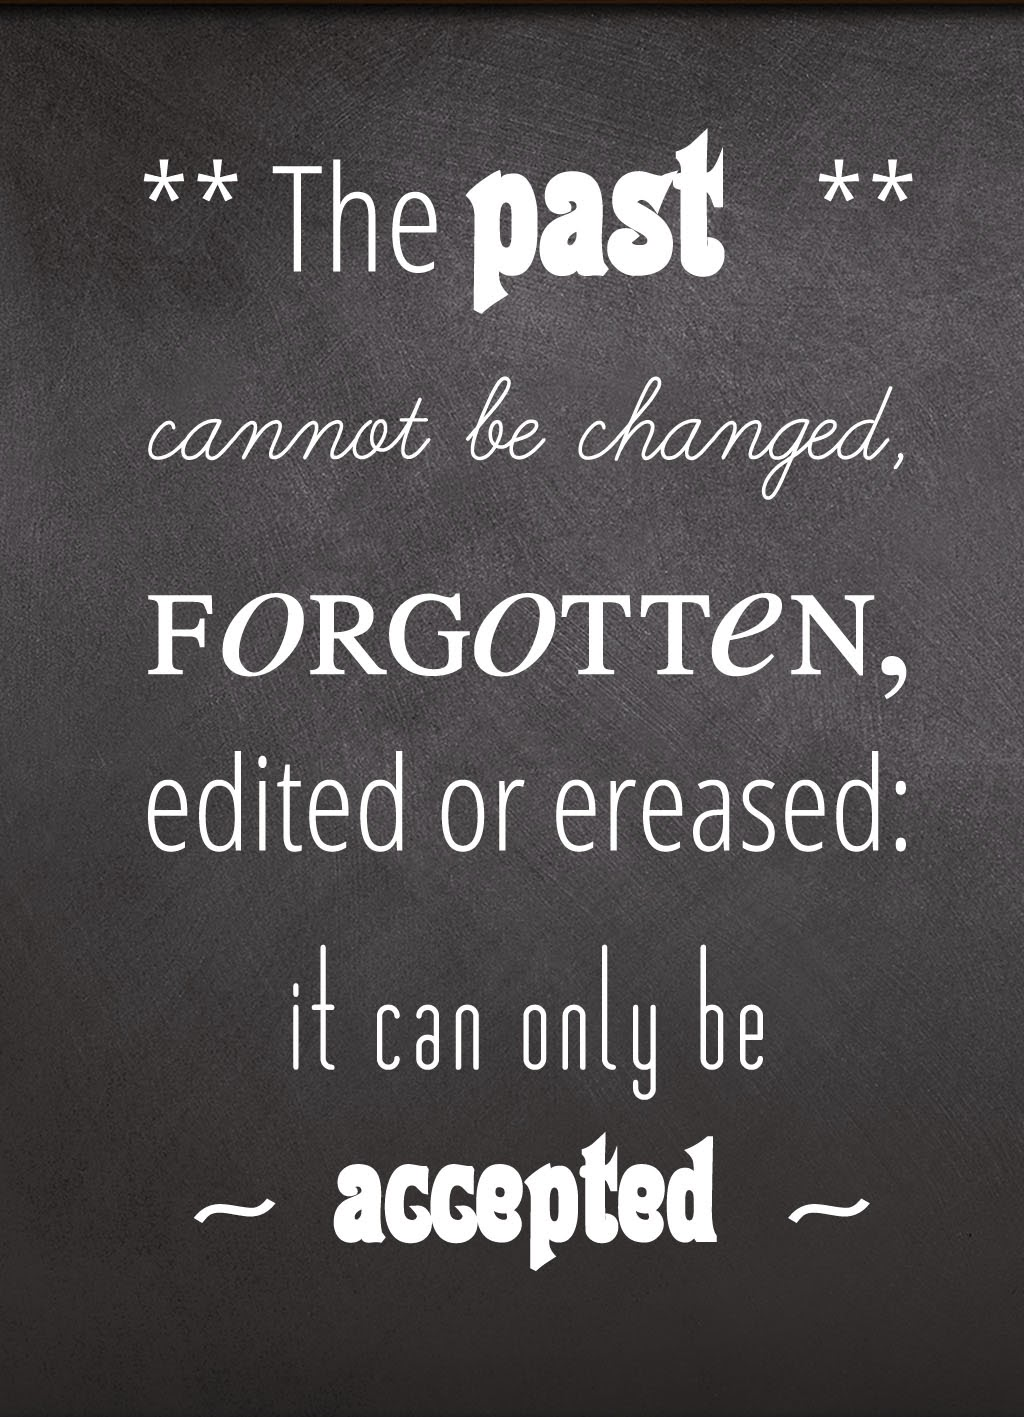 Quote of the Day :: The past cannot be changes, forgotten, edited oder ereased: it can only be accepted